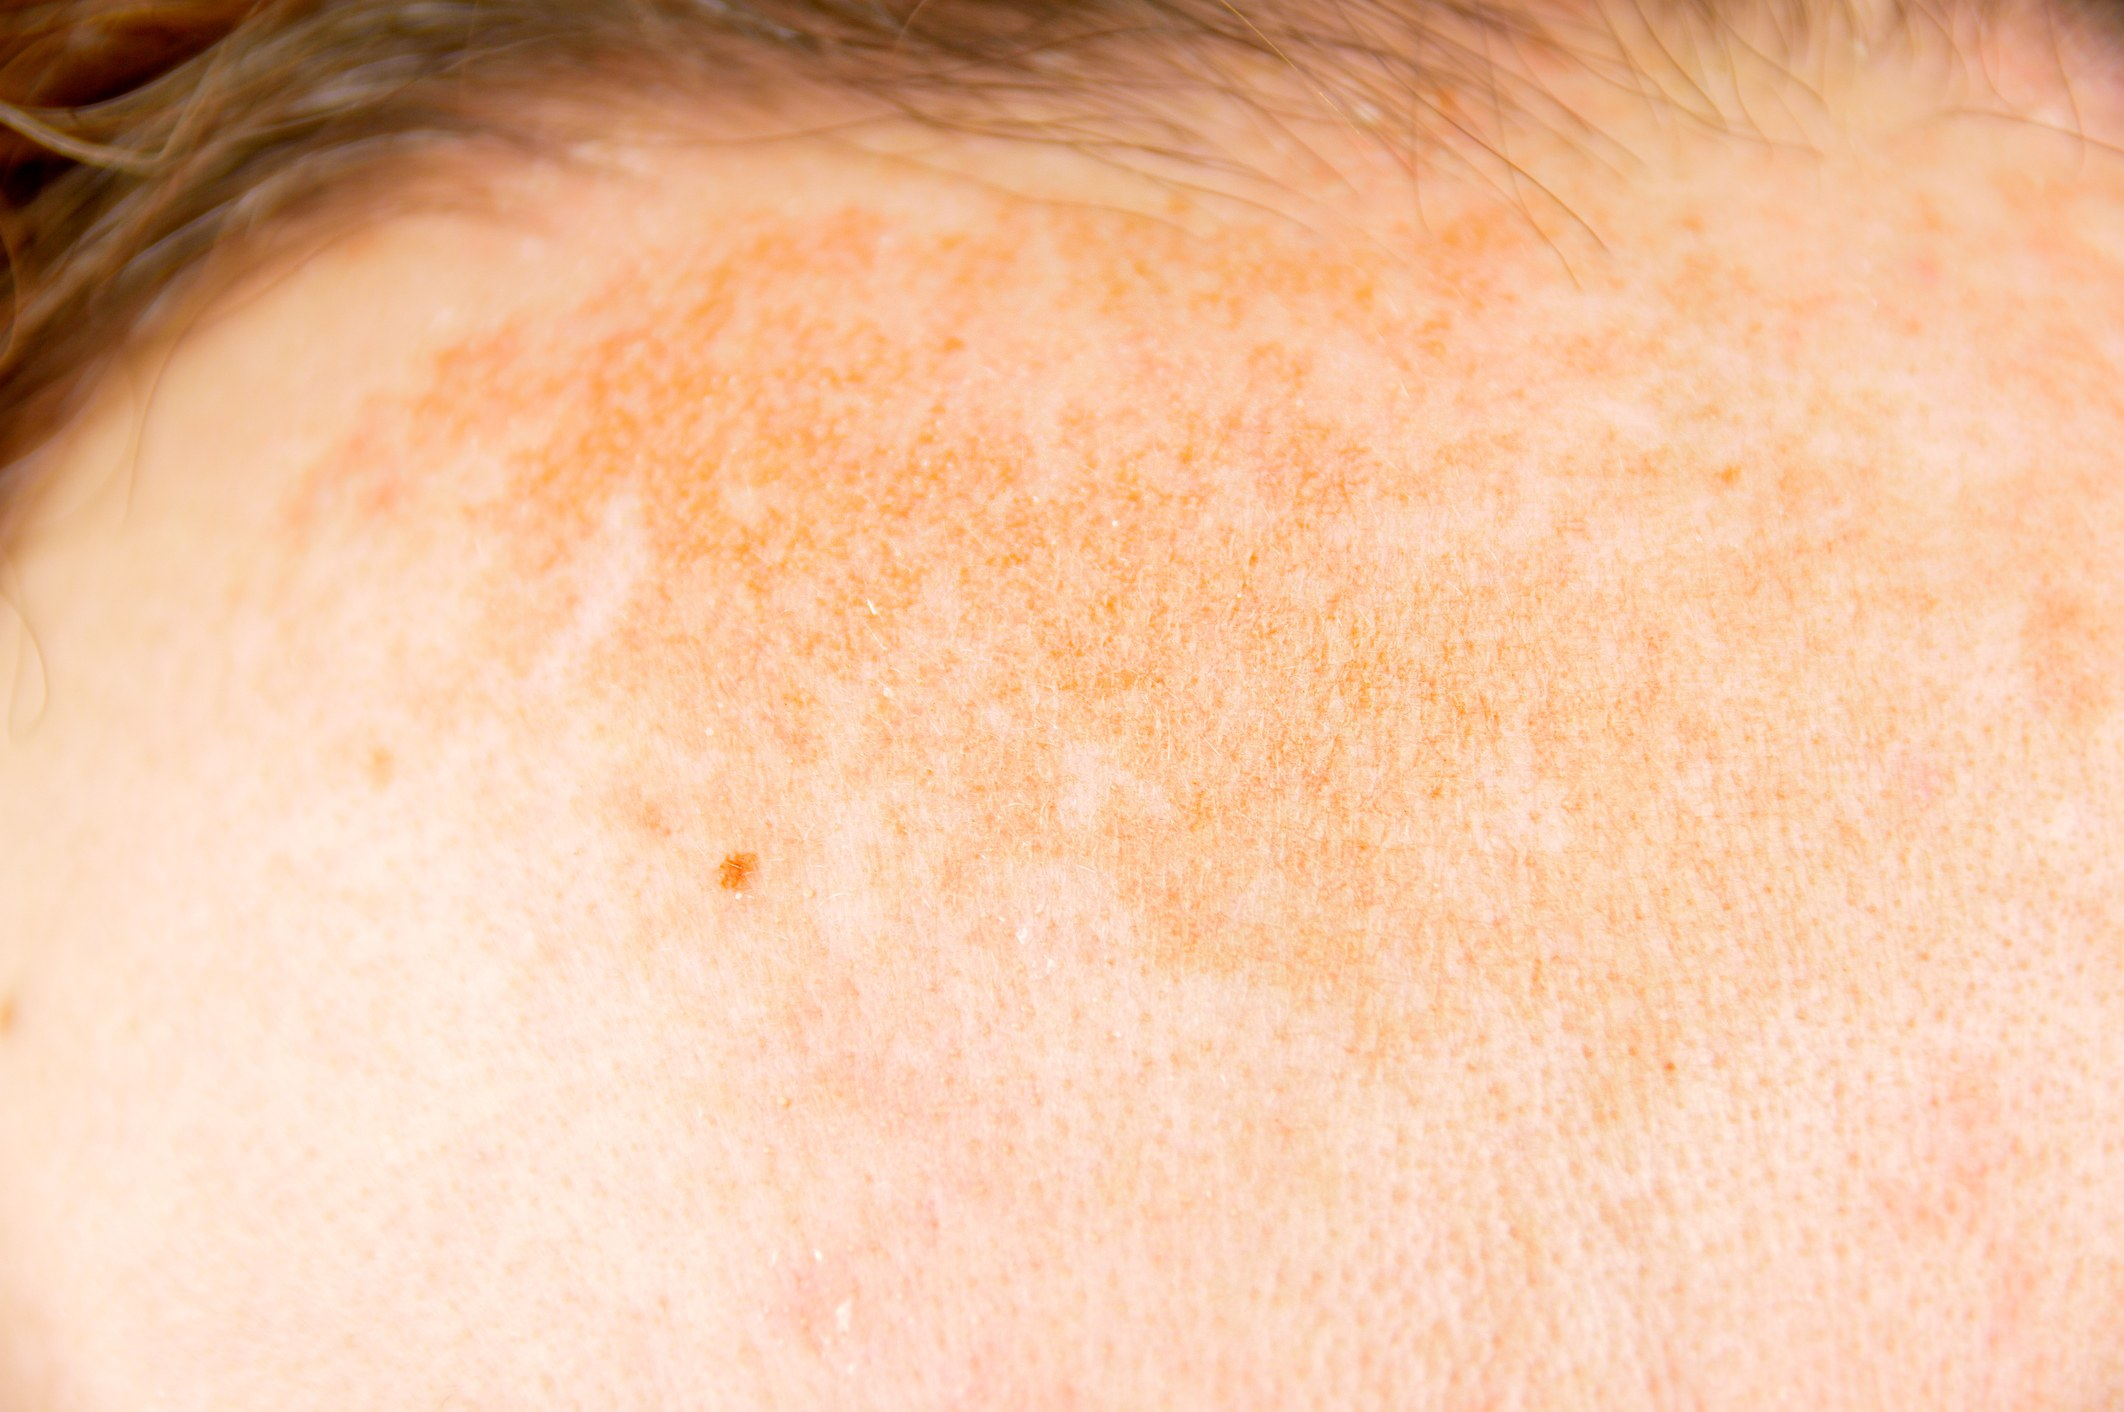 Woman with dark patch on forehead skin